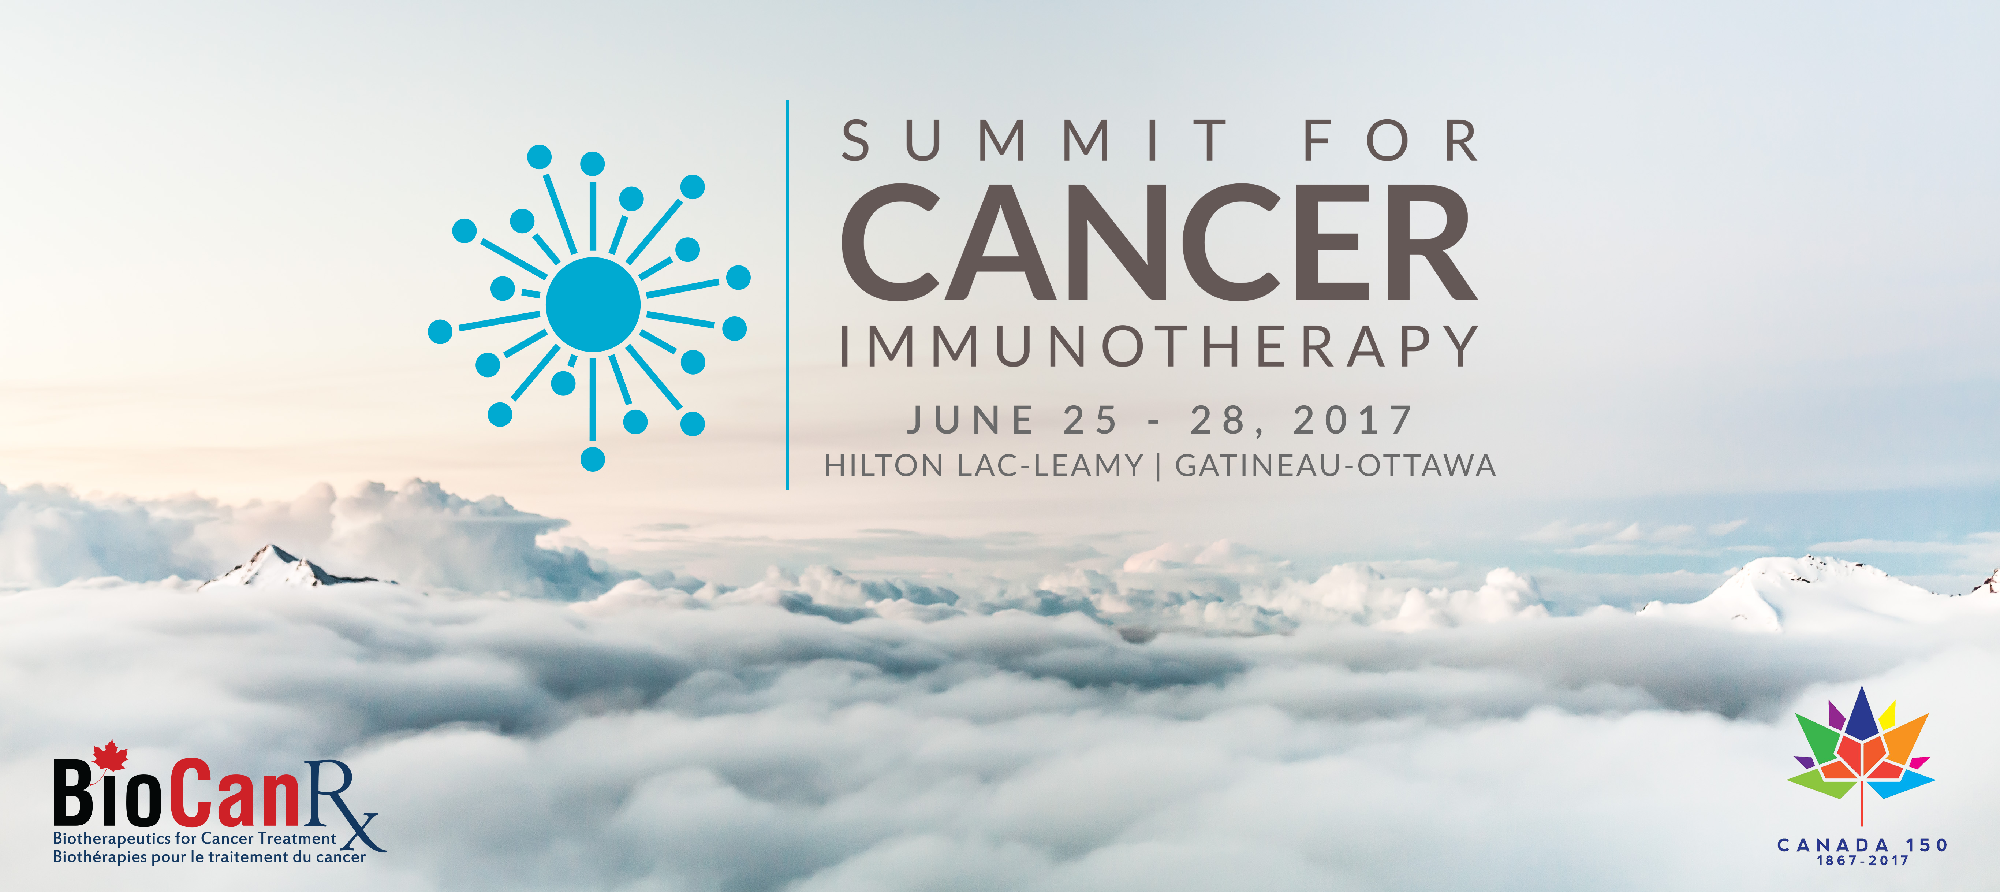 Summit for Cancer Immunotherapy 2017